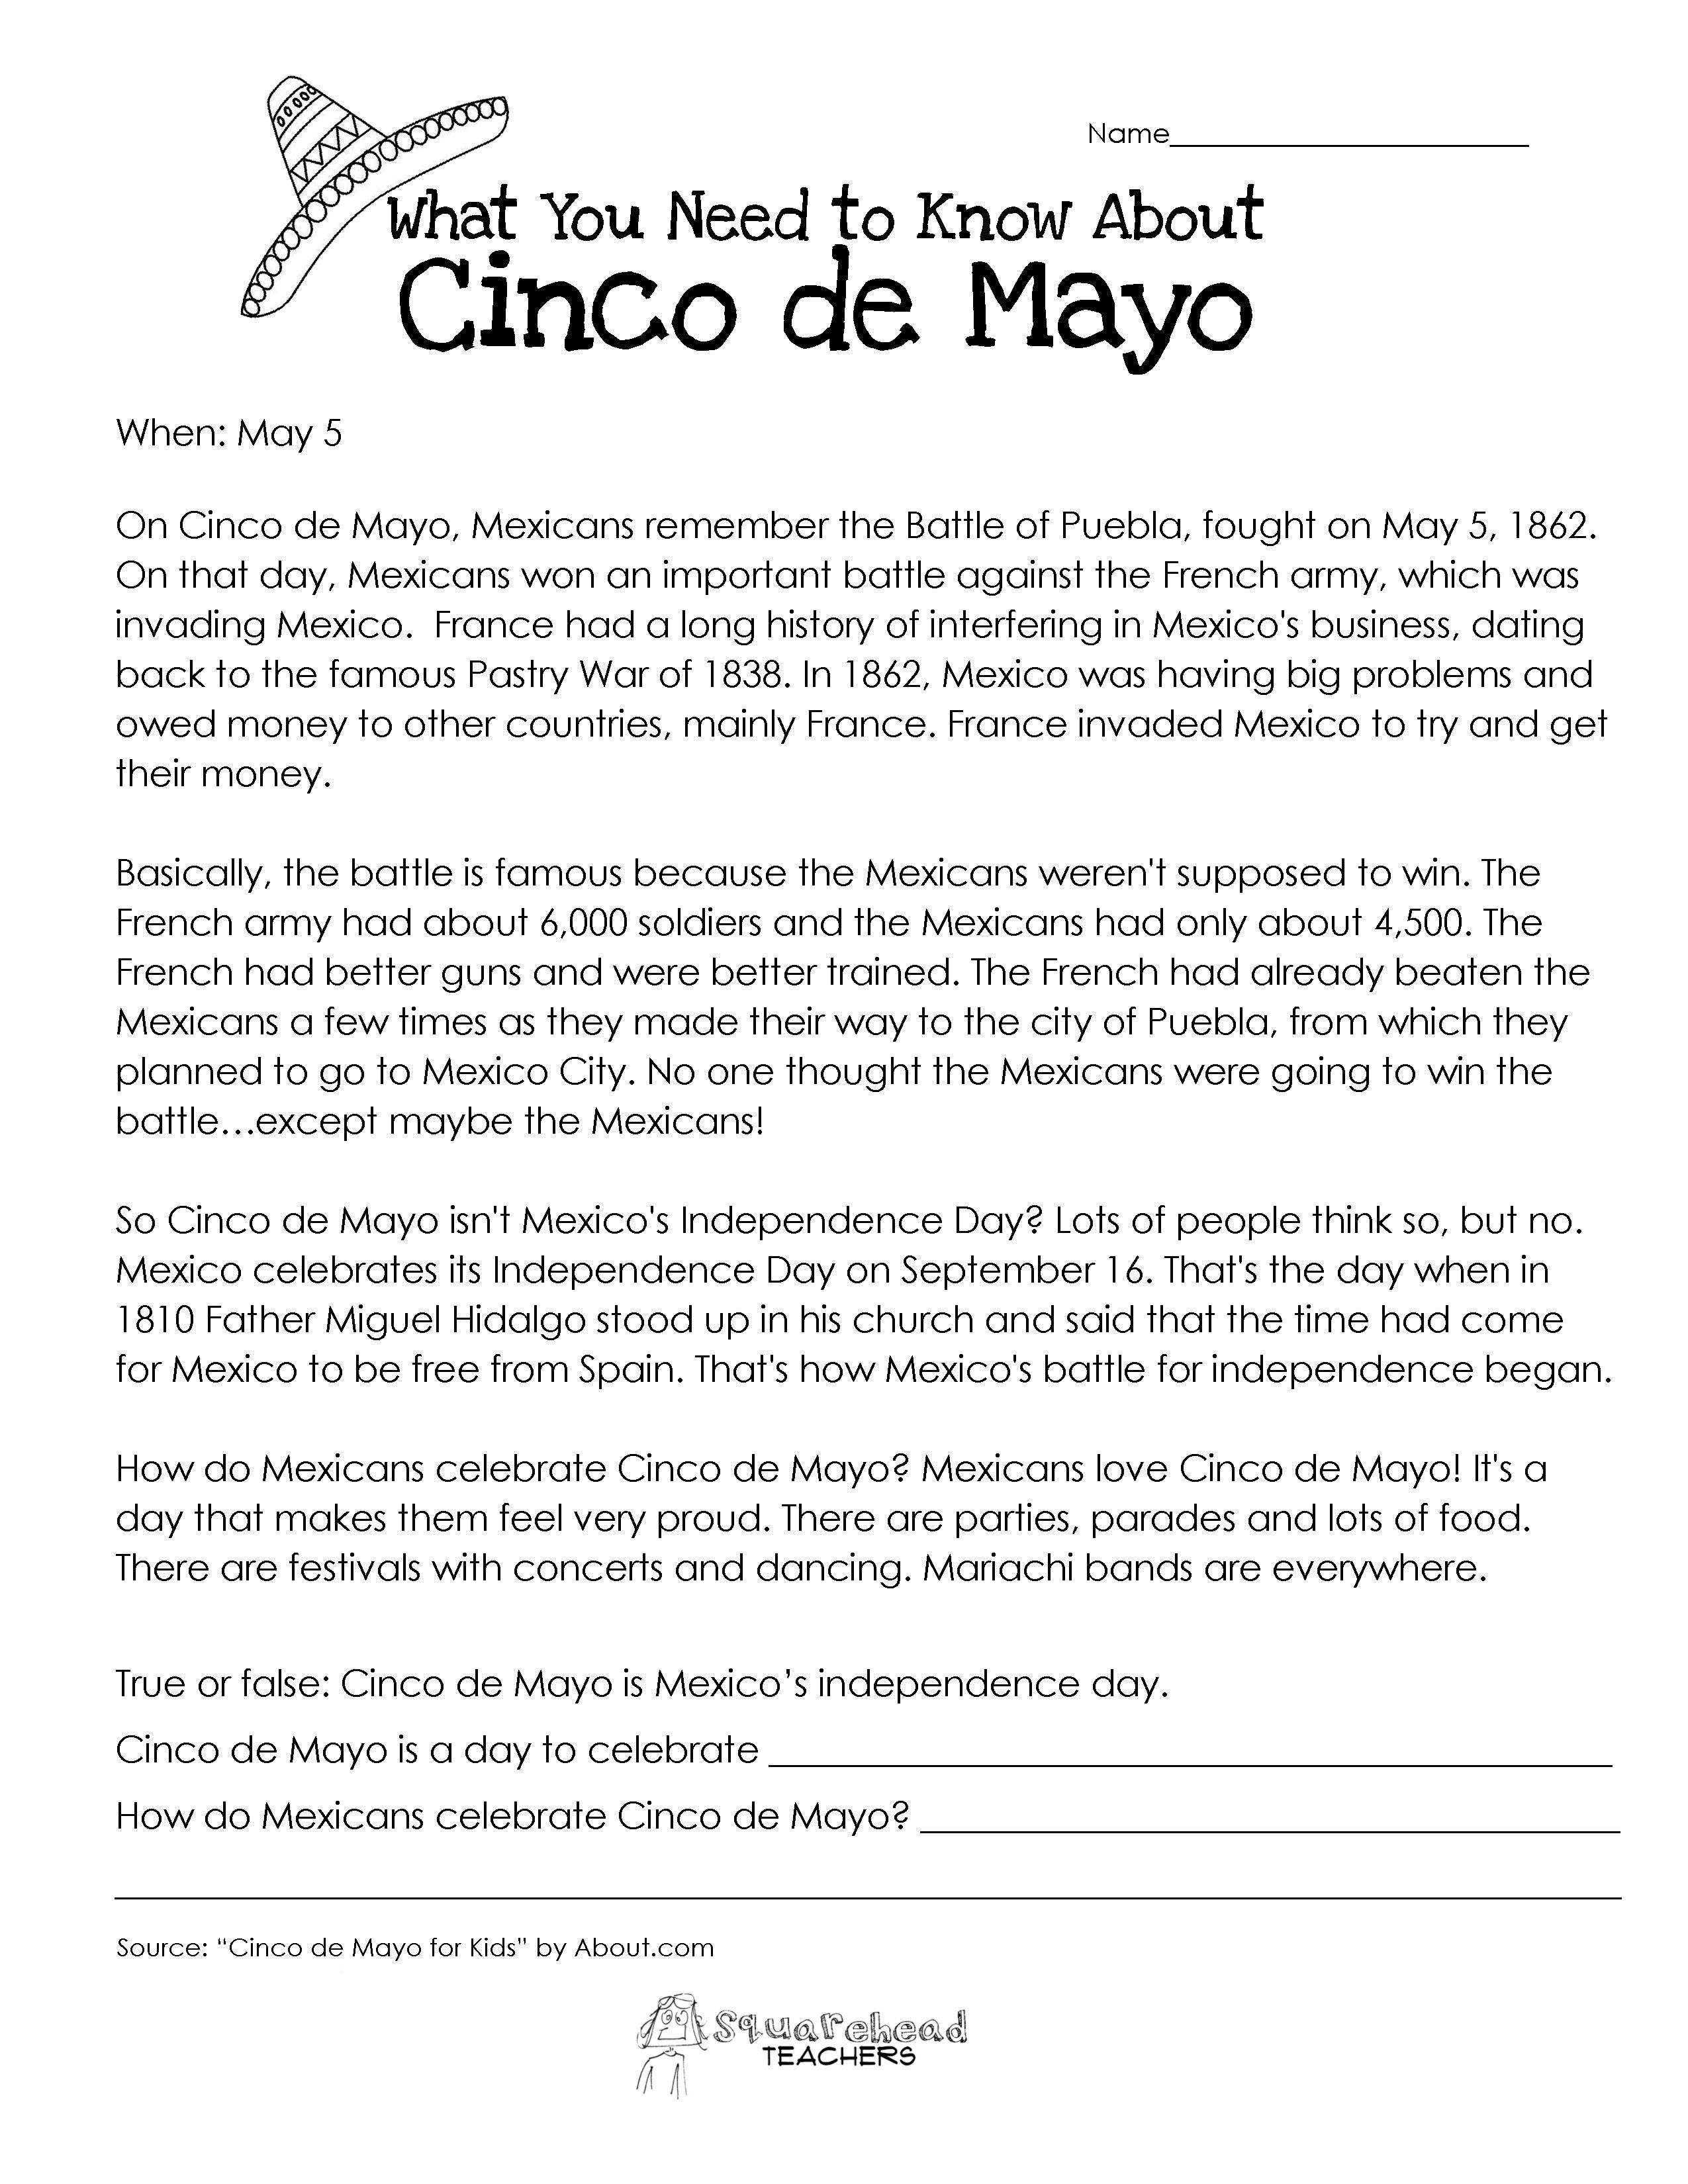 Image Result For Mexican Independence Day Worksheet For